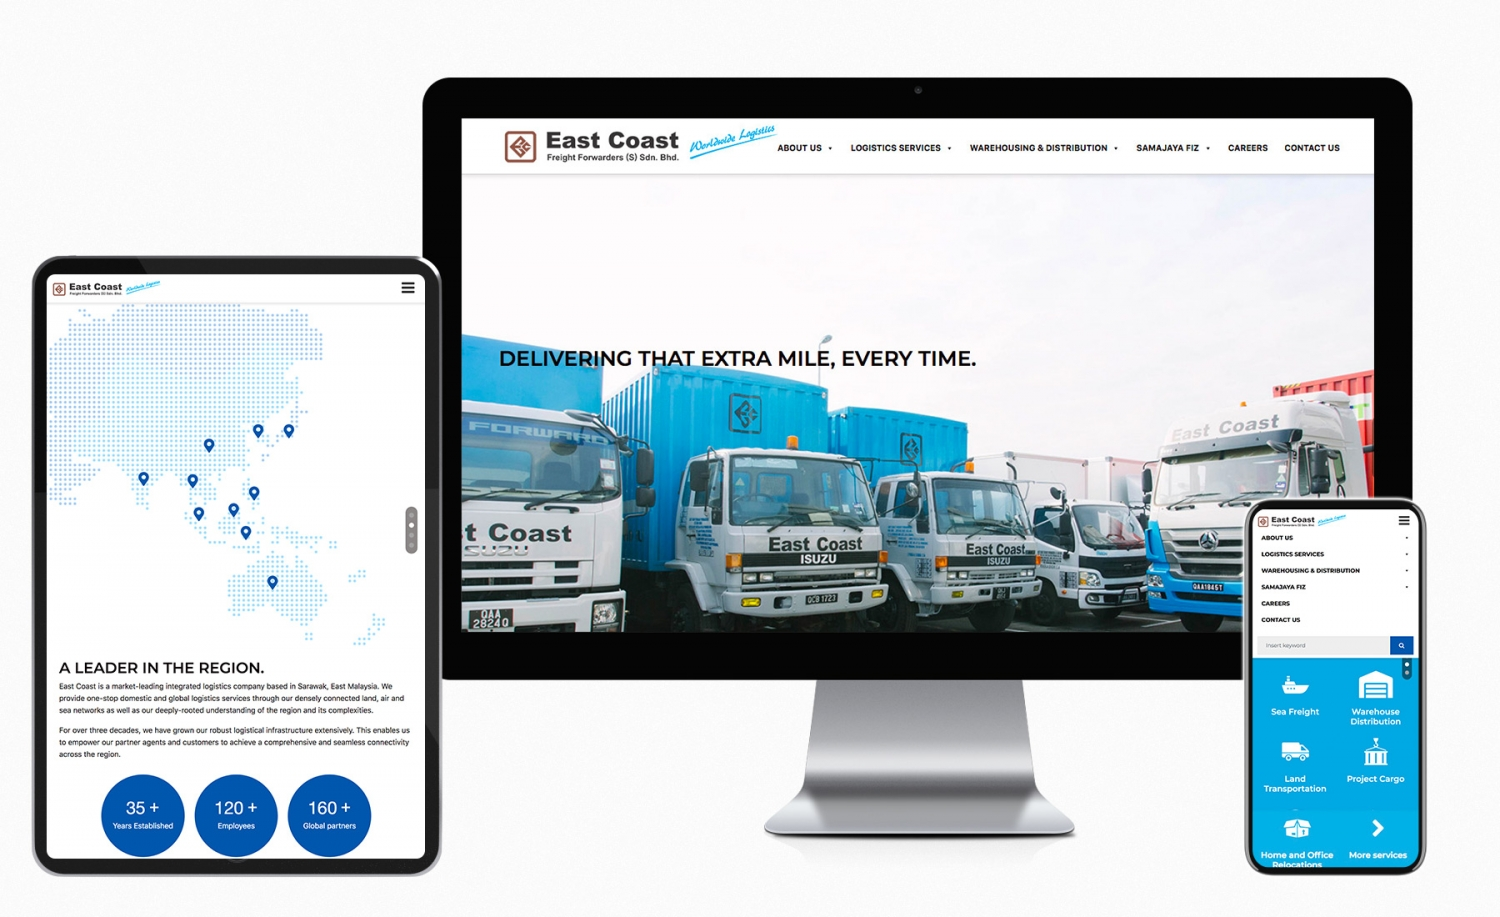 East Coast Freight Forwarders (S) Sdn. Bhd. website design and development